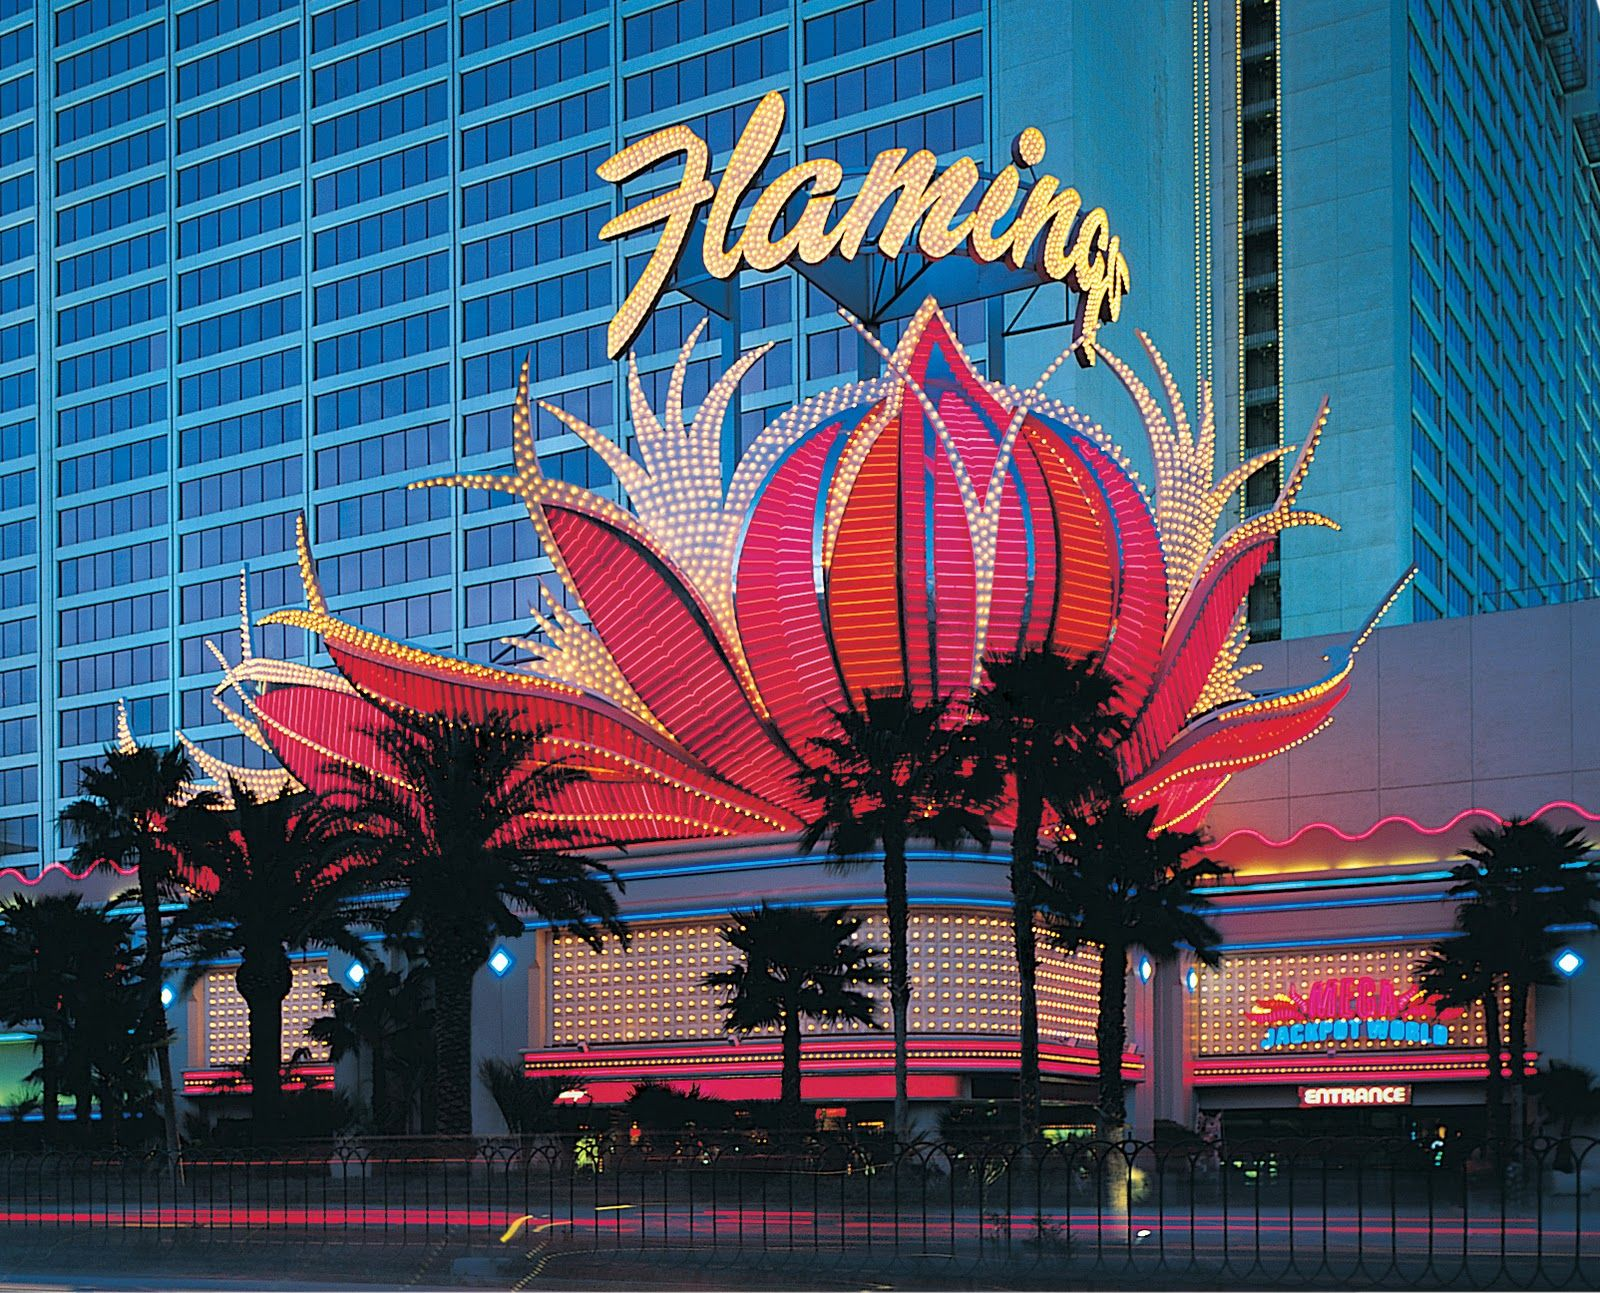 Flamingo hilton hotel and casino in las vegas nick xenophon online gambling